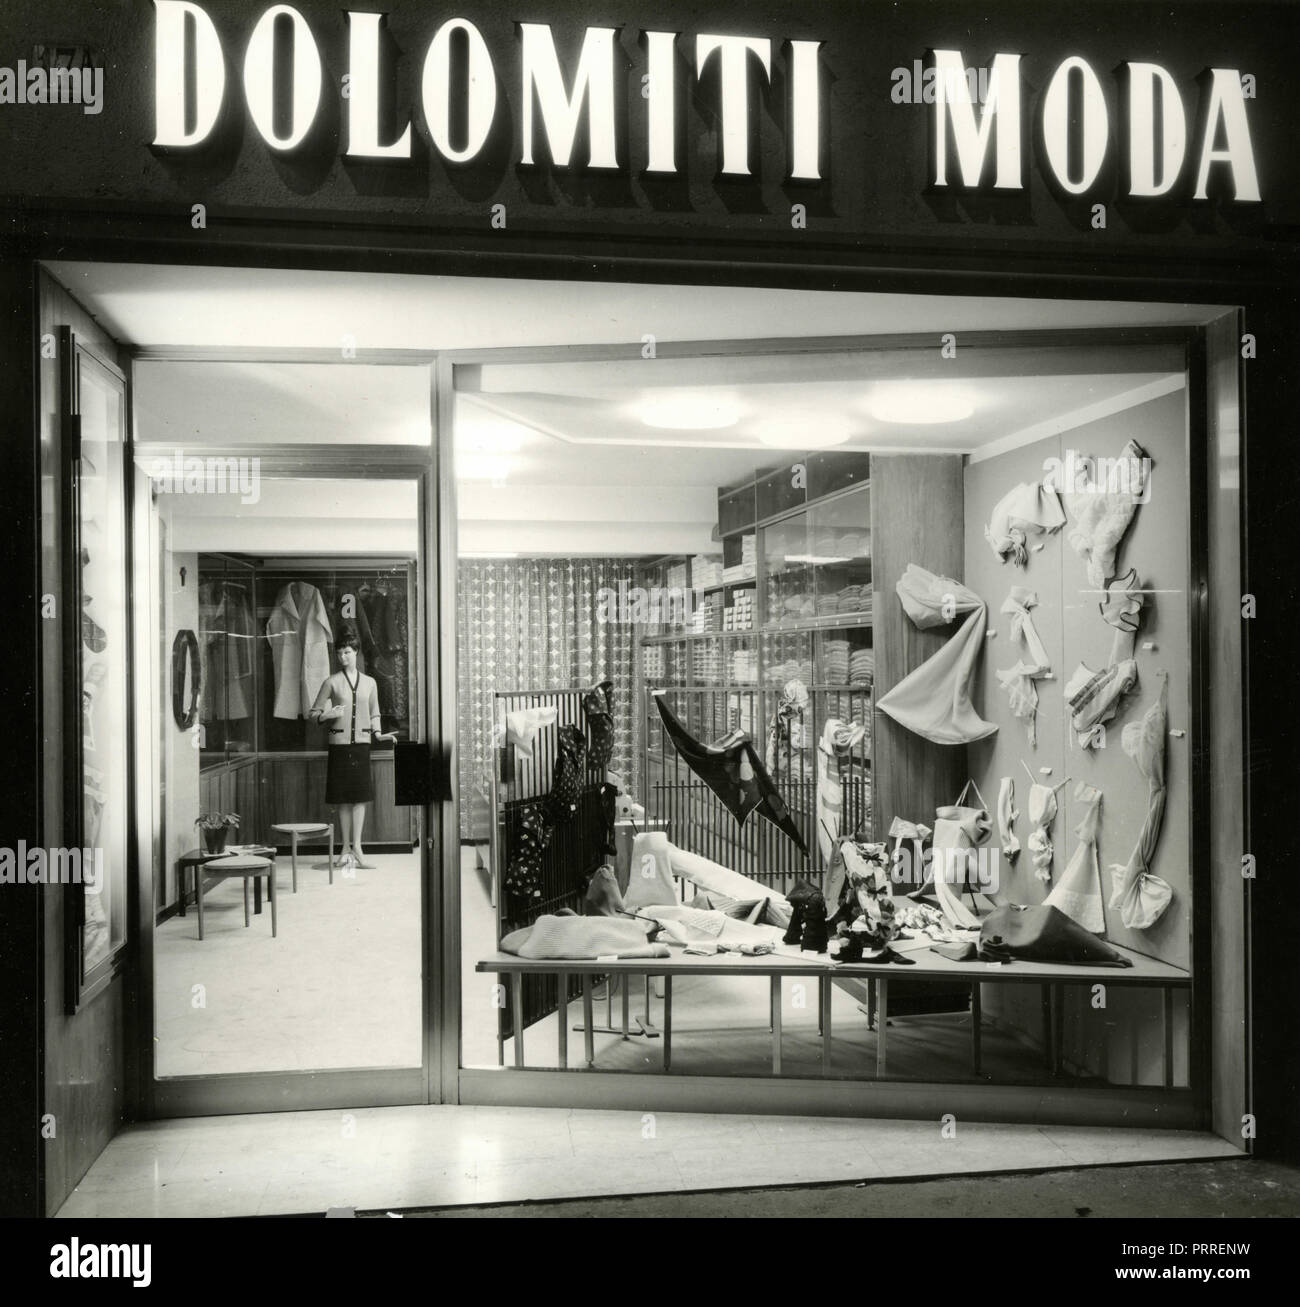 The windows of the shop Dolomiti Moda, Bolzano, Italy 1960s Stock Photo